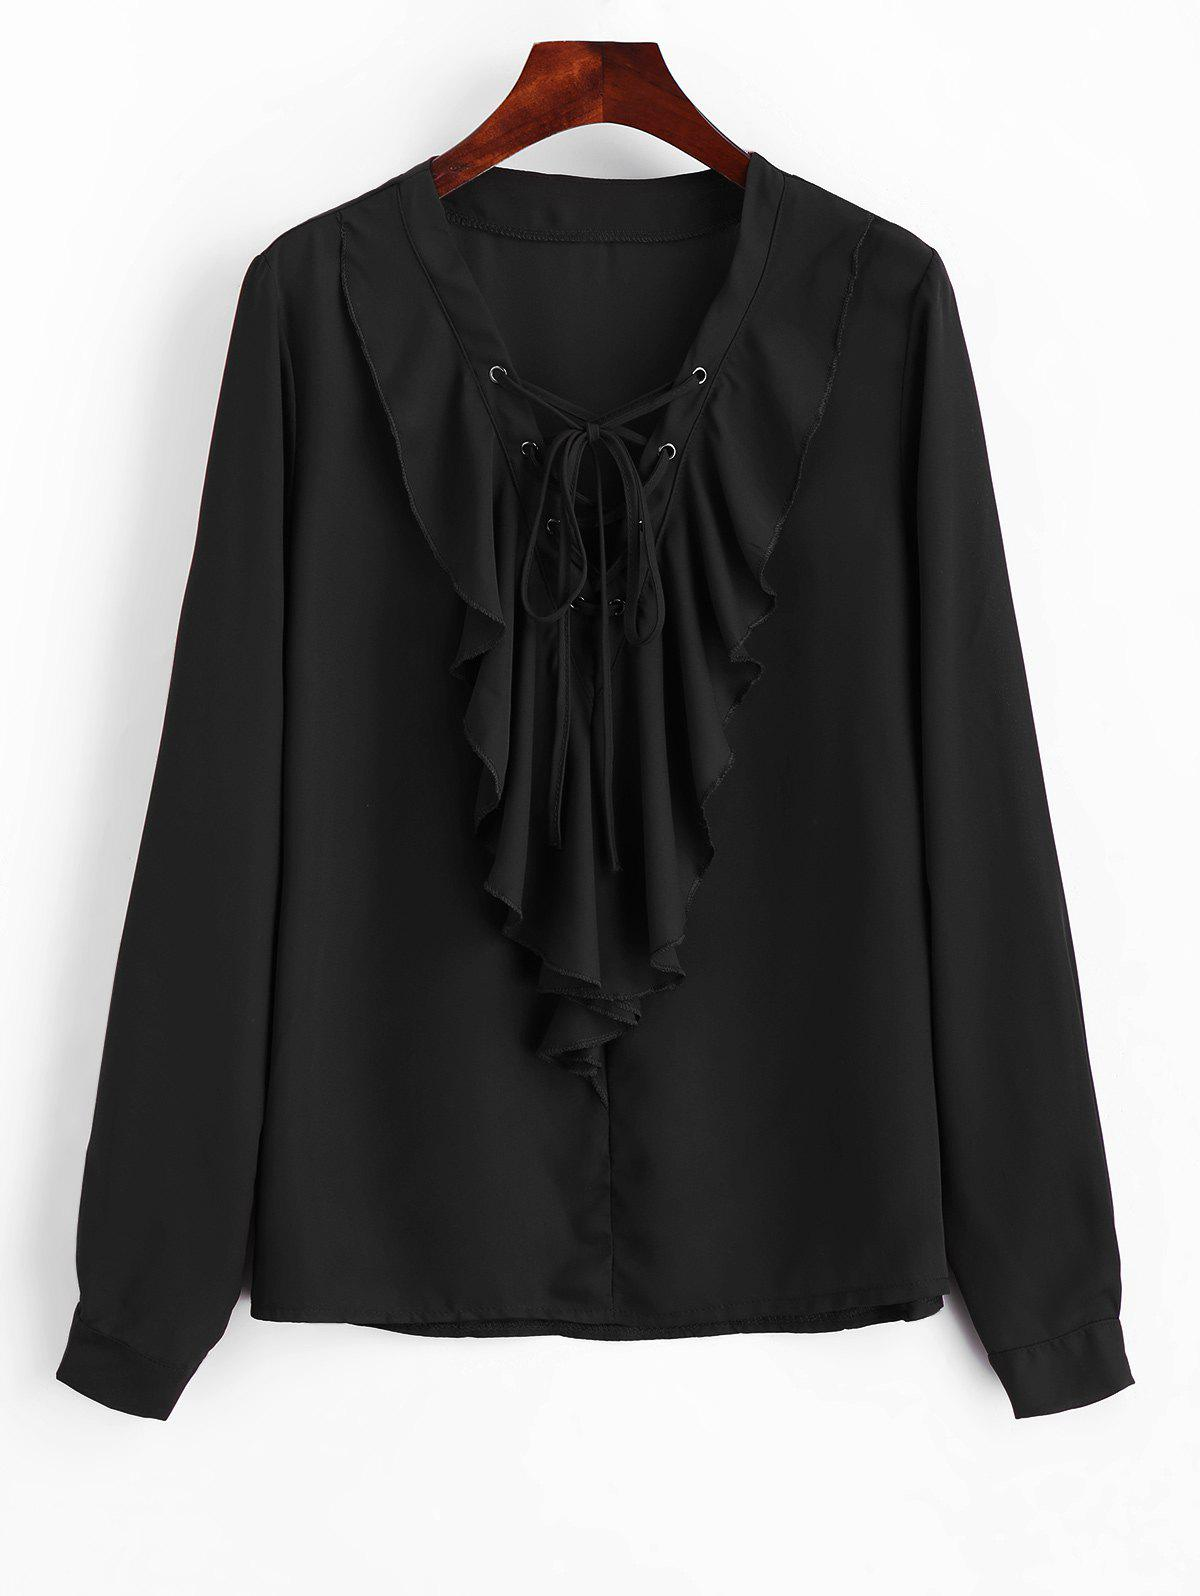 Lace Up Ruffles Blouse en mousseline de soie - Noir S